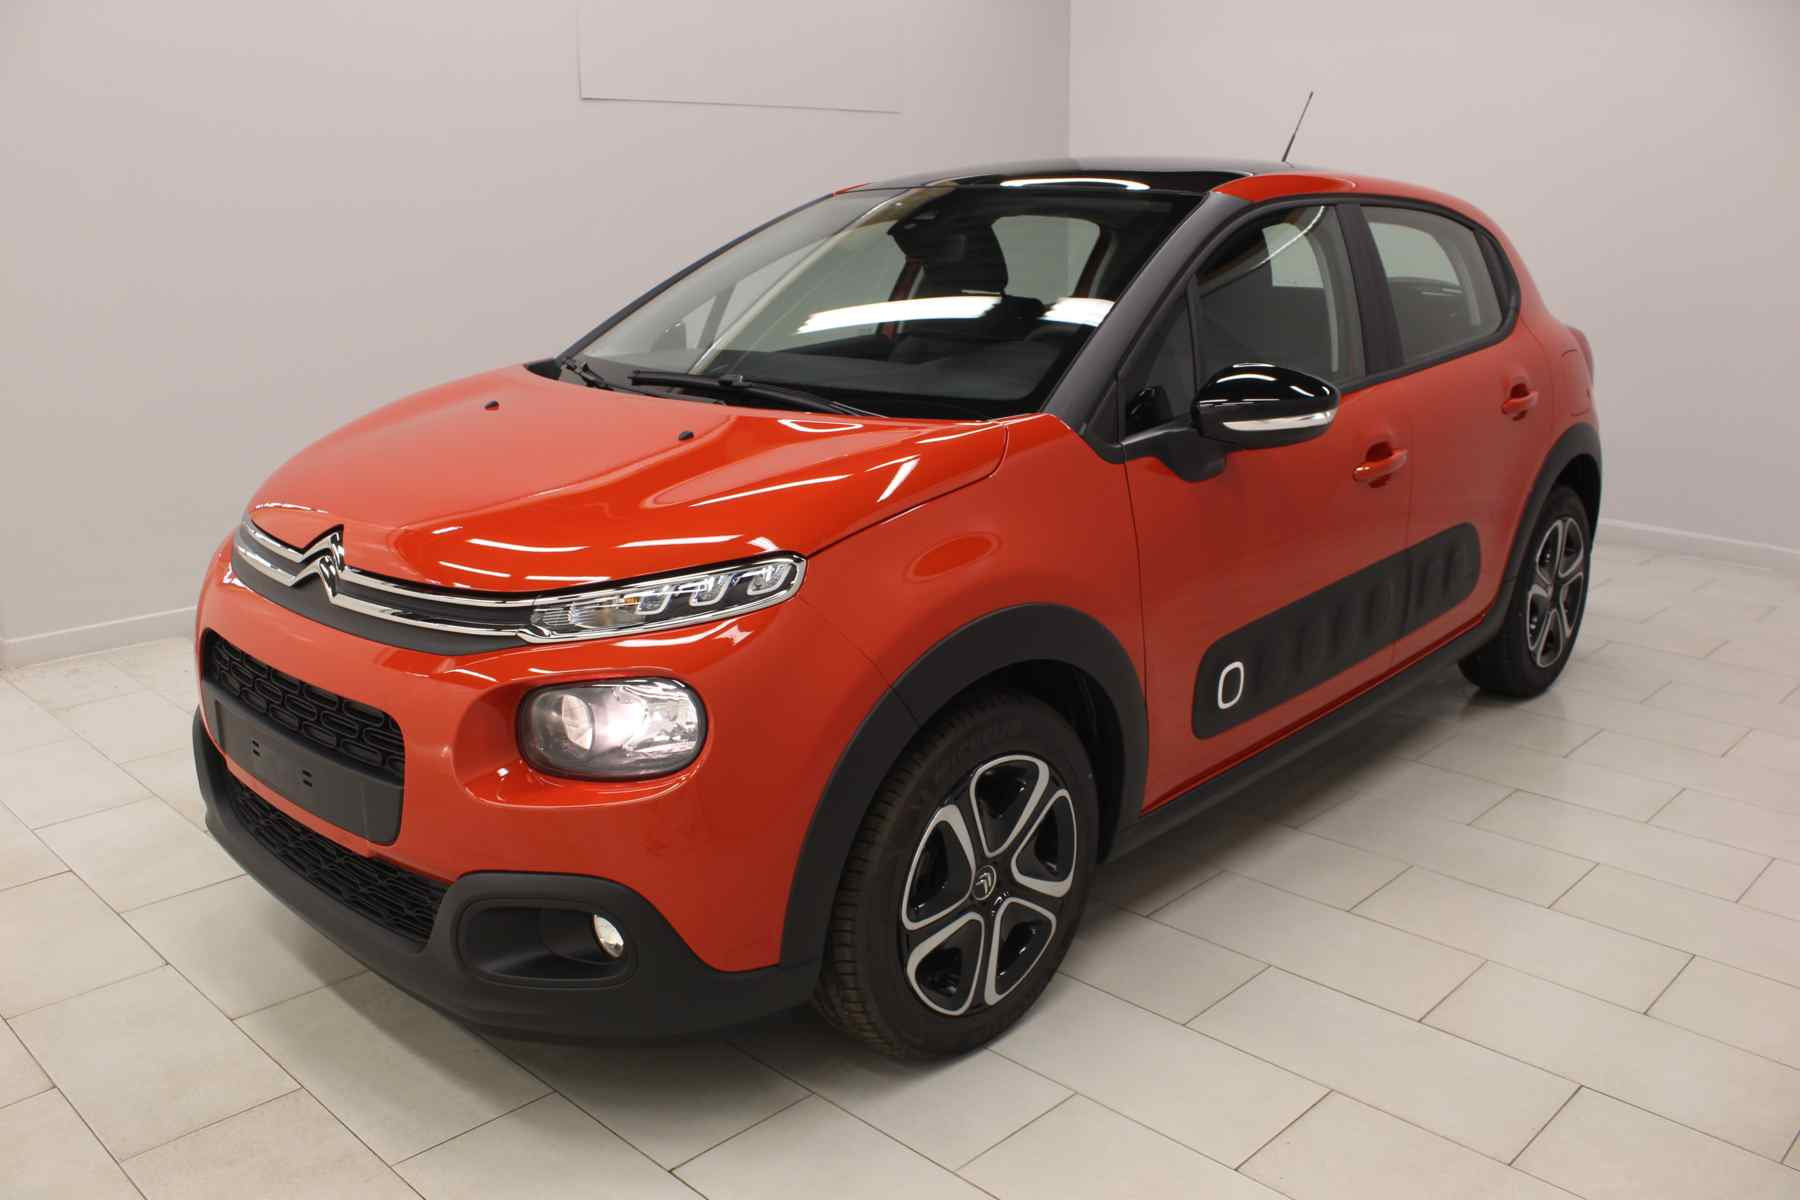 Acheter CITROEN C3 PureTech 82 S&S Feel Orange Power + Toit vitre panoramique + Jantes Steel and Design 16 avec options chez un mandataire auto